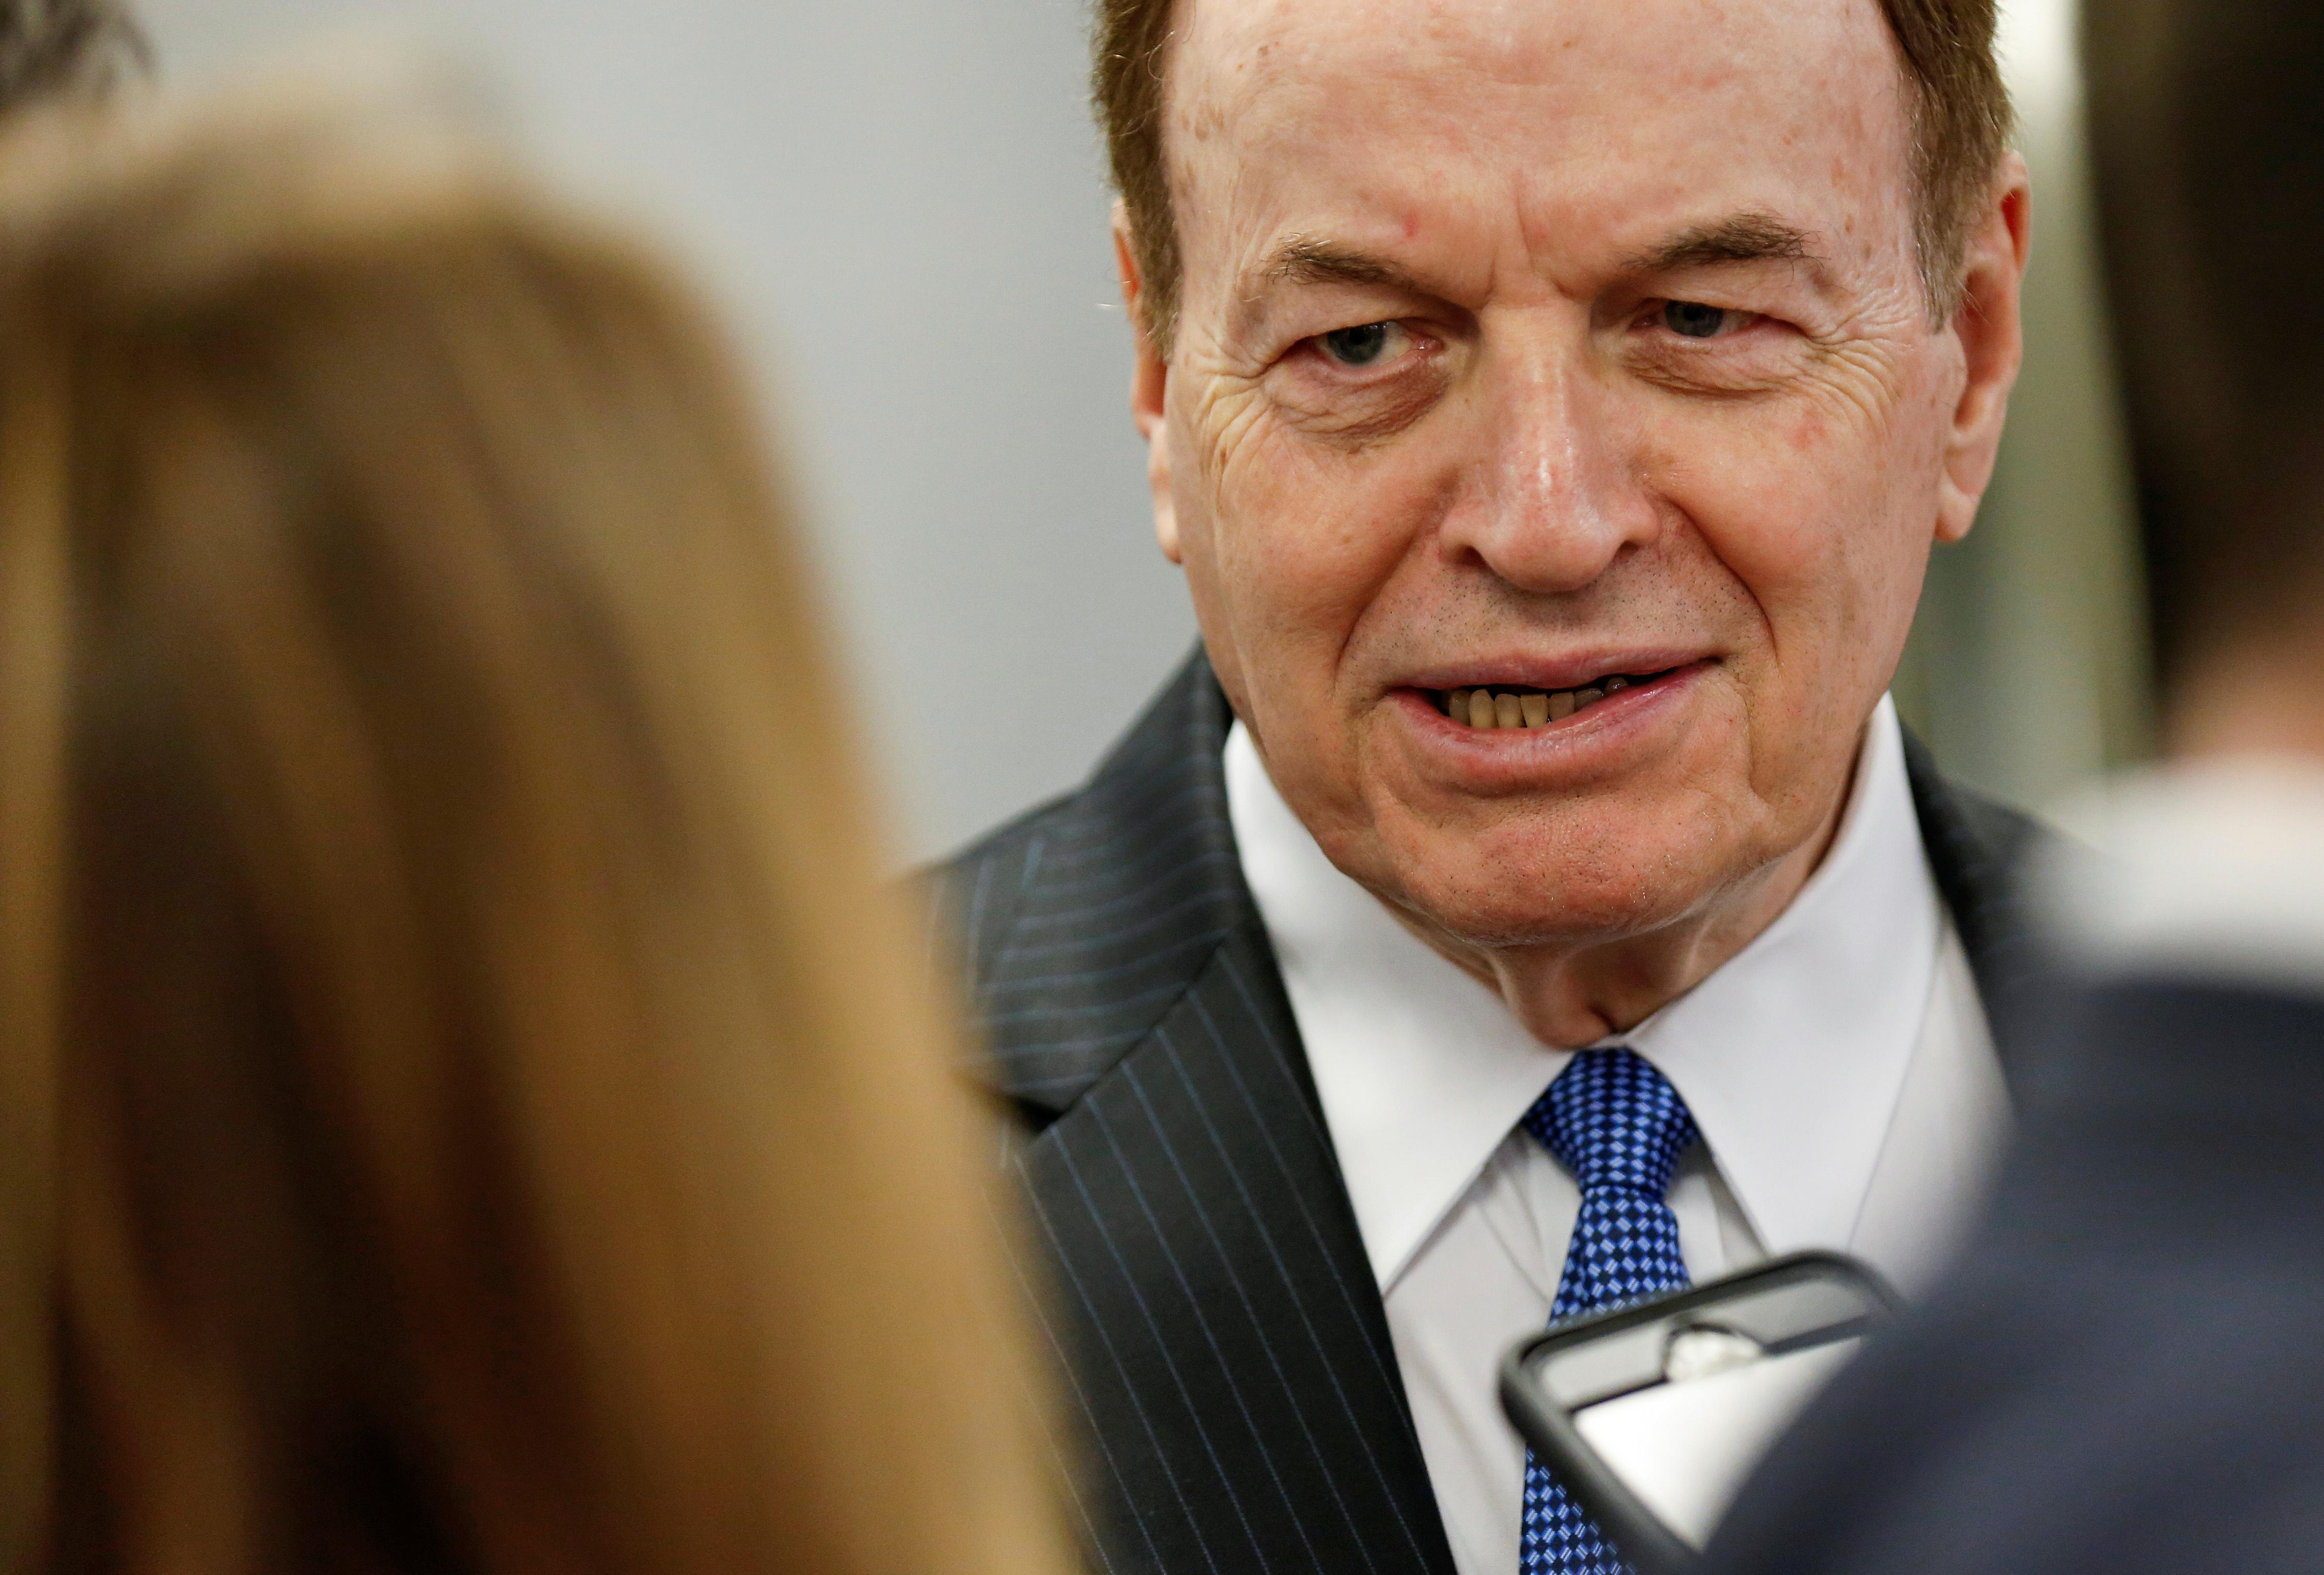 U.S. Senator Shelby says 'agreement in principle' reached on border security